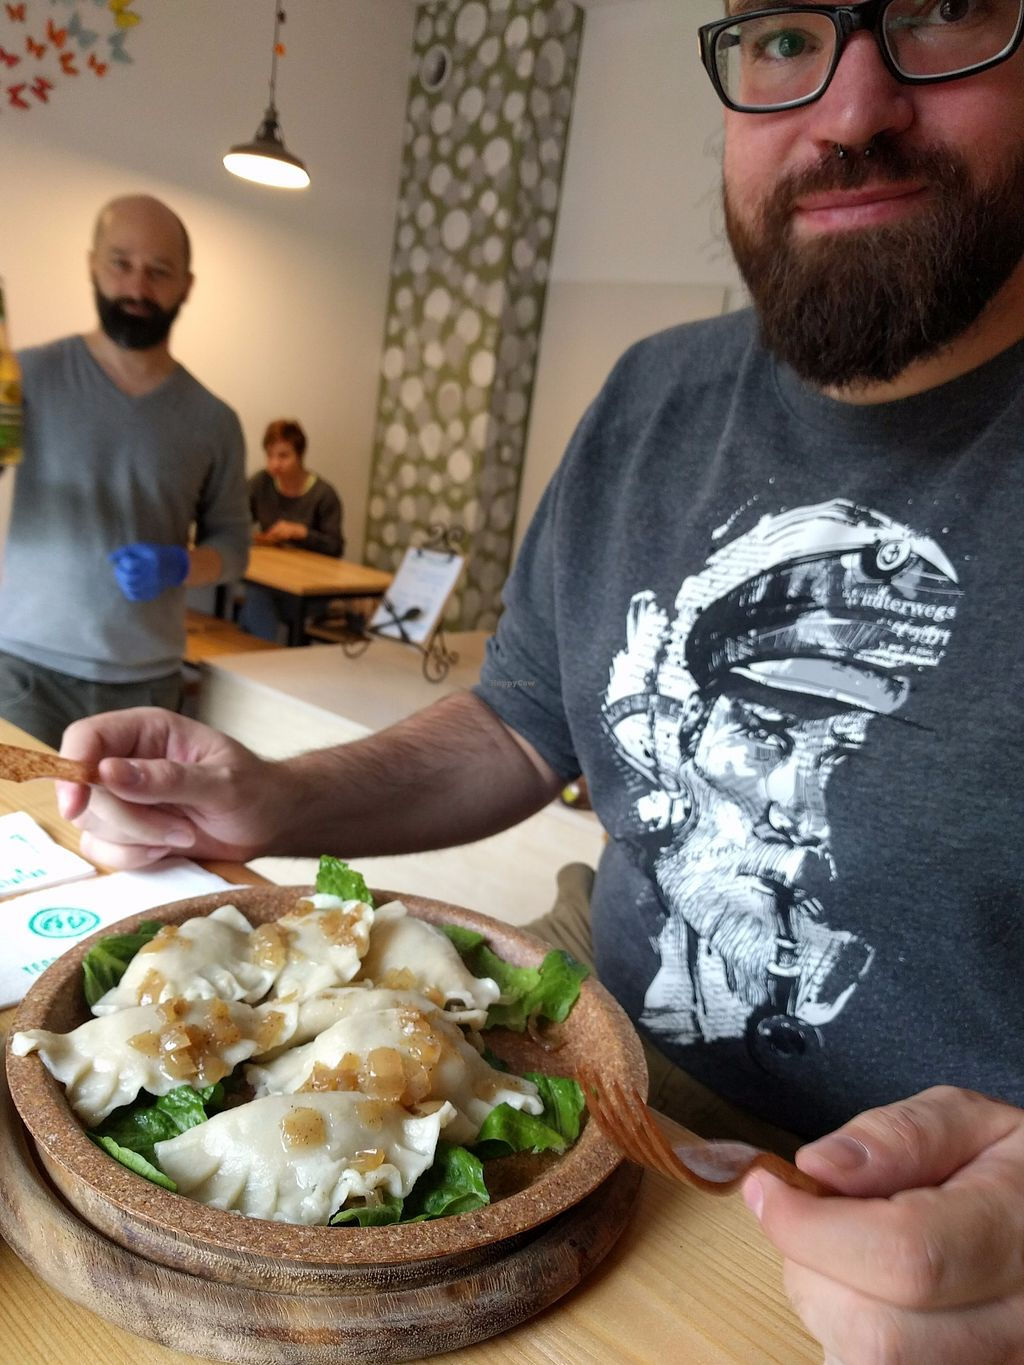 """Photo of Evka Vegebar  by <a href=""""/members/profile/conny515"""">conny515</a> <br/>Wenn ate the piroggi with potato/parsley filling. The owner told us that the Plate can be eaten, too <br/> October 4, 2017  - <a href='/contact/abuse/image/74691/311698'>Report</a>"""